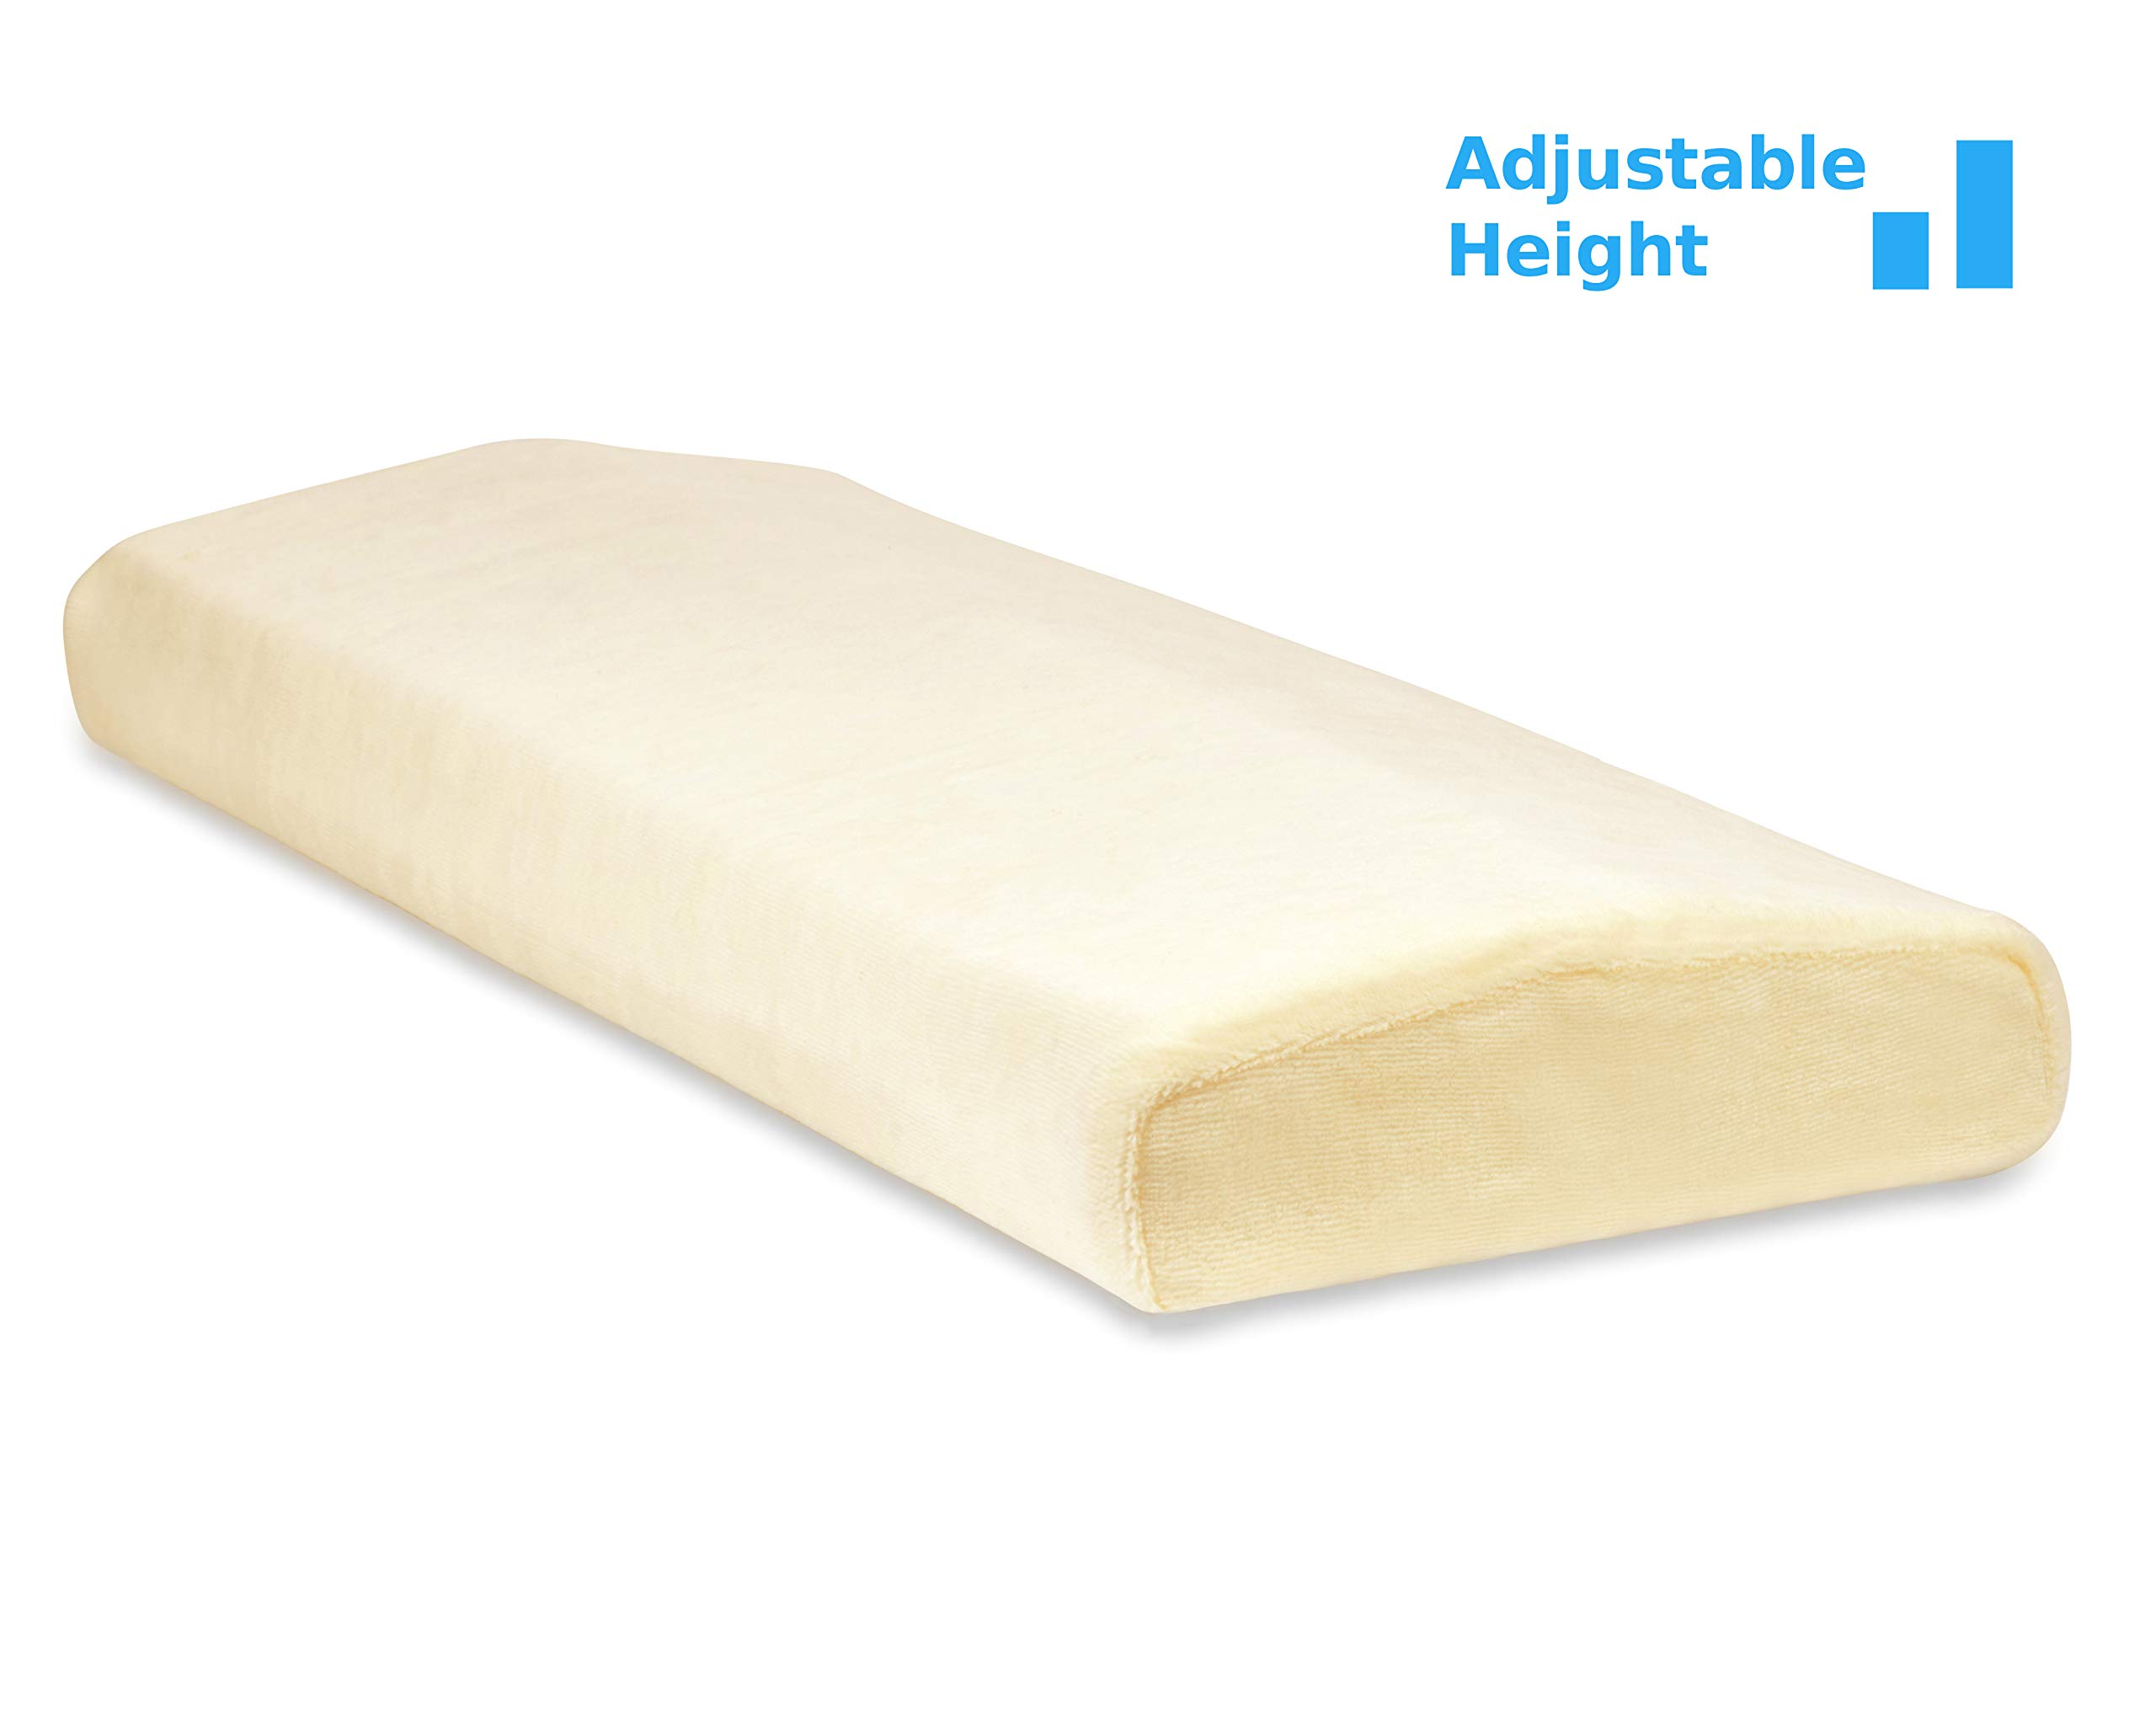 TruContour Super Lumbar Pillow for Sleeping - Adjustable Height - Support The Lower Back in Bed